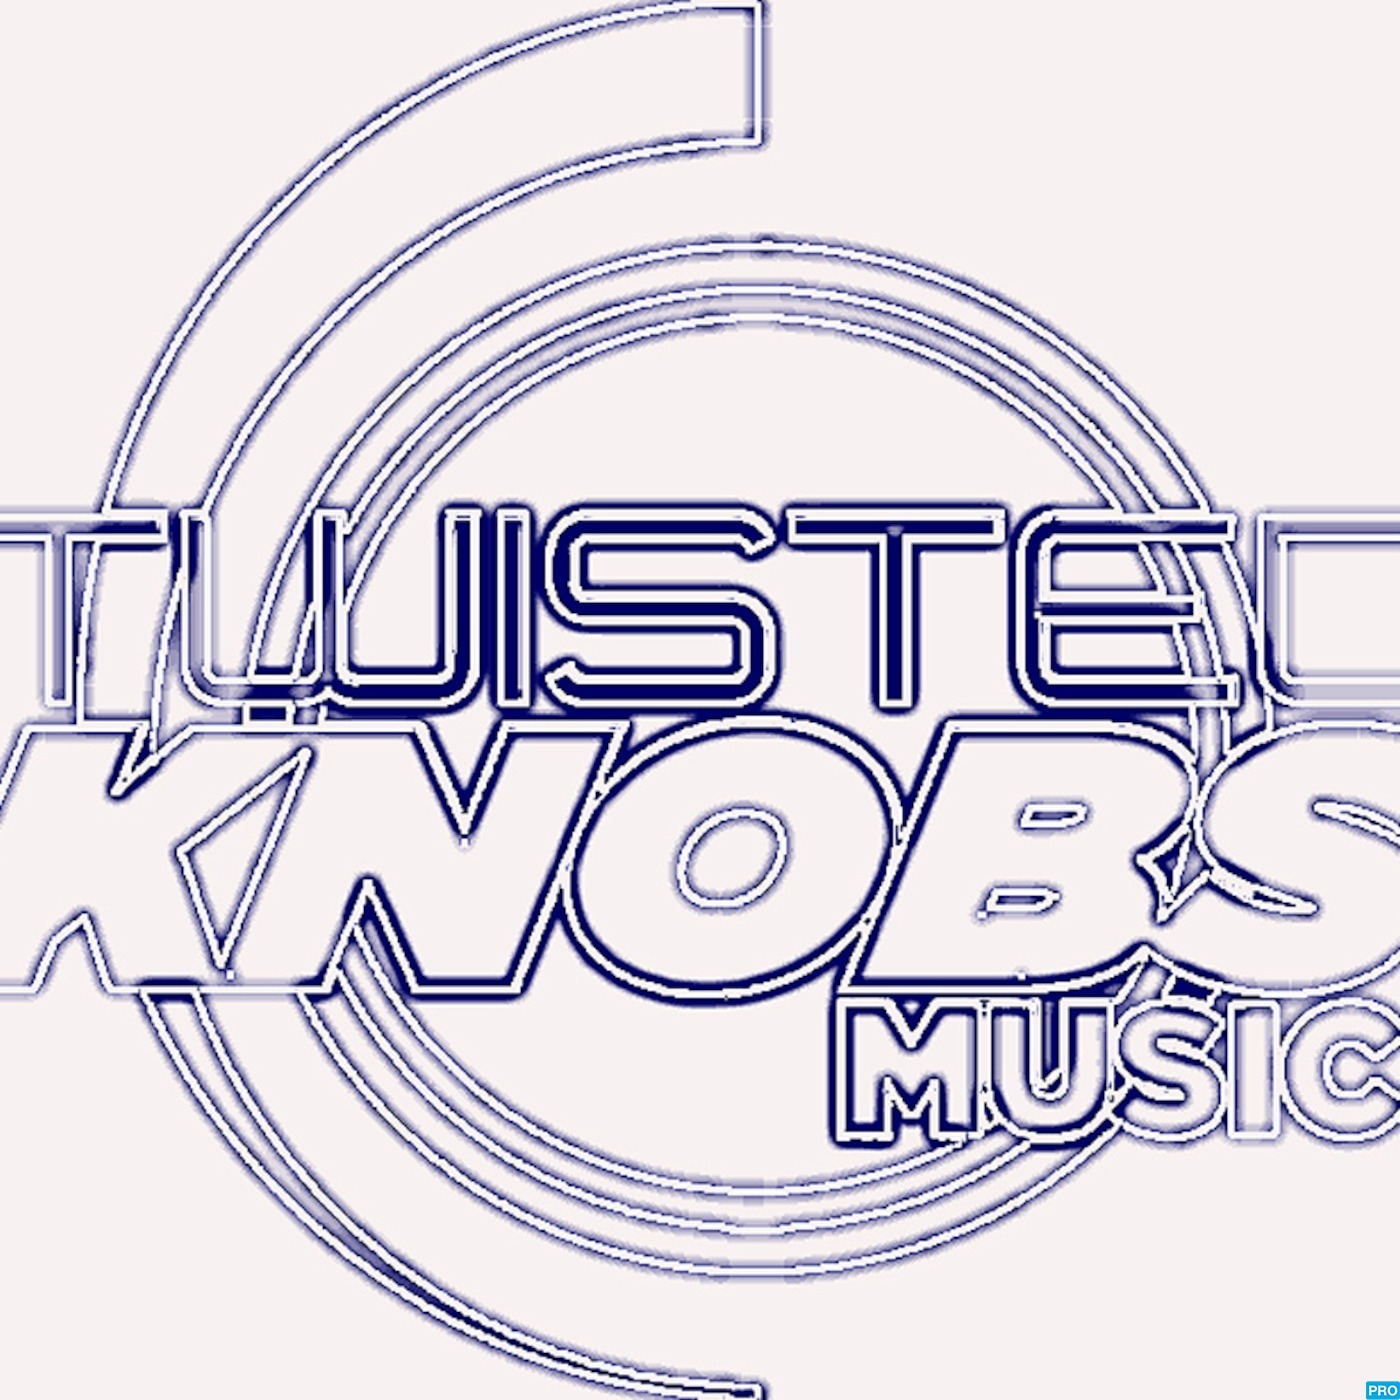 twistedknobsmusic's Podcast